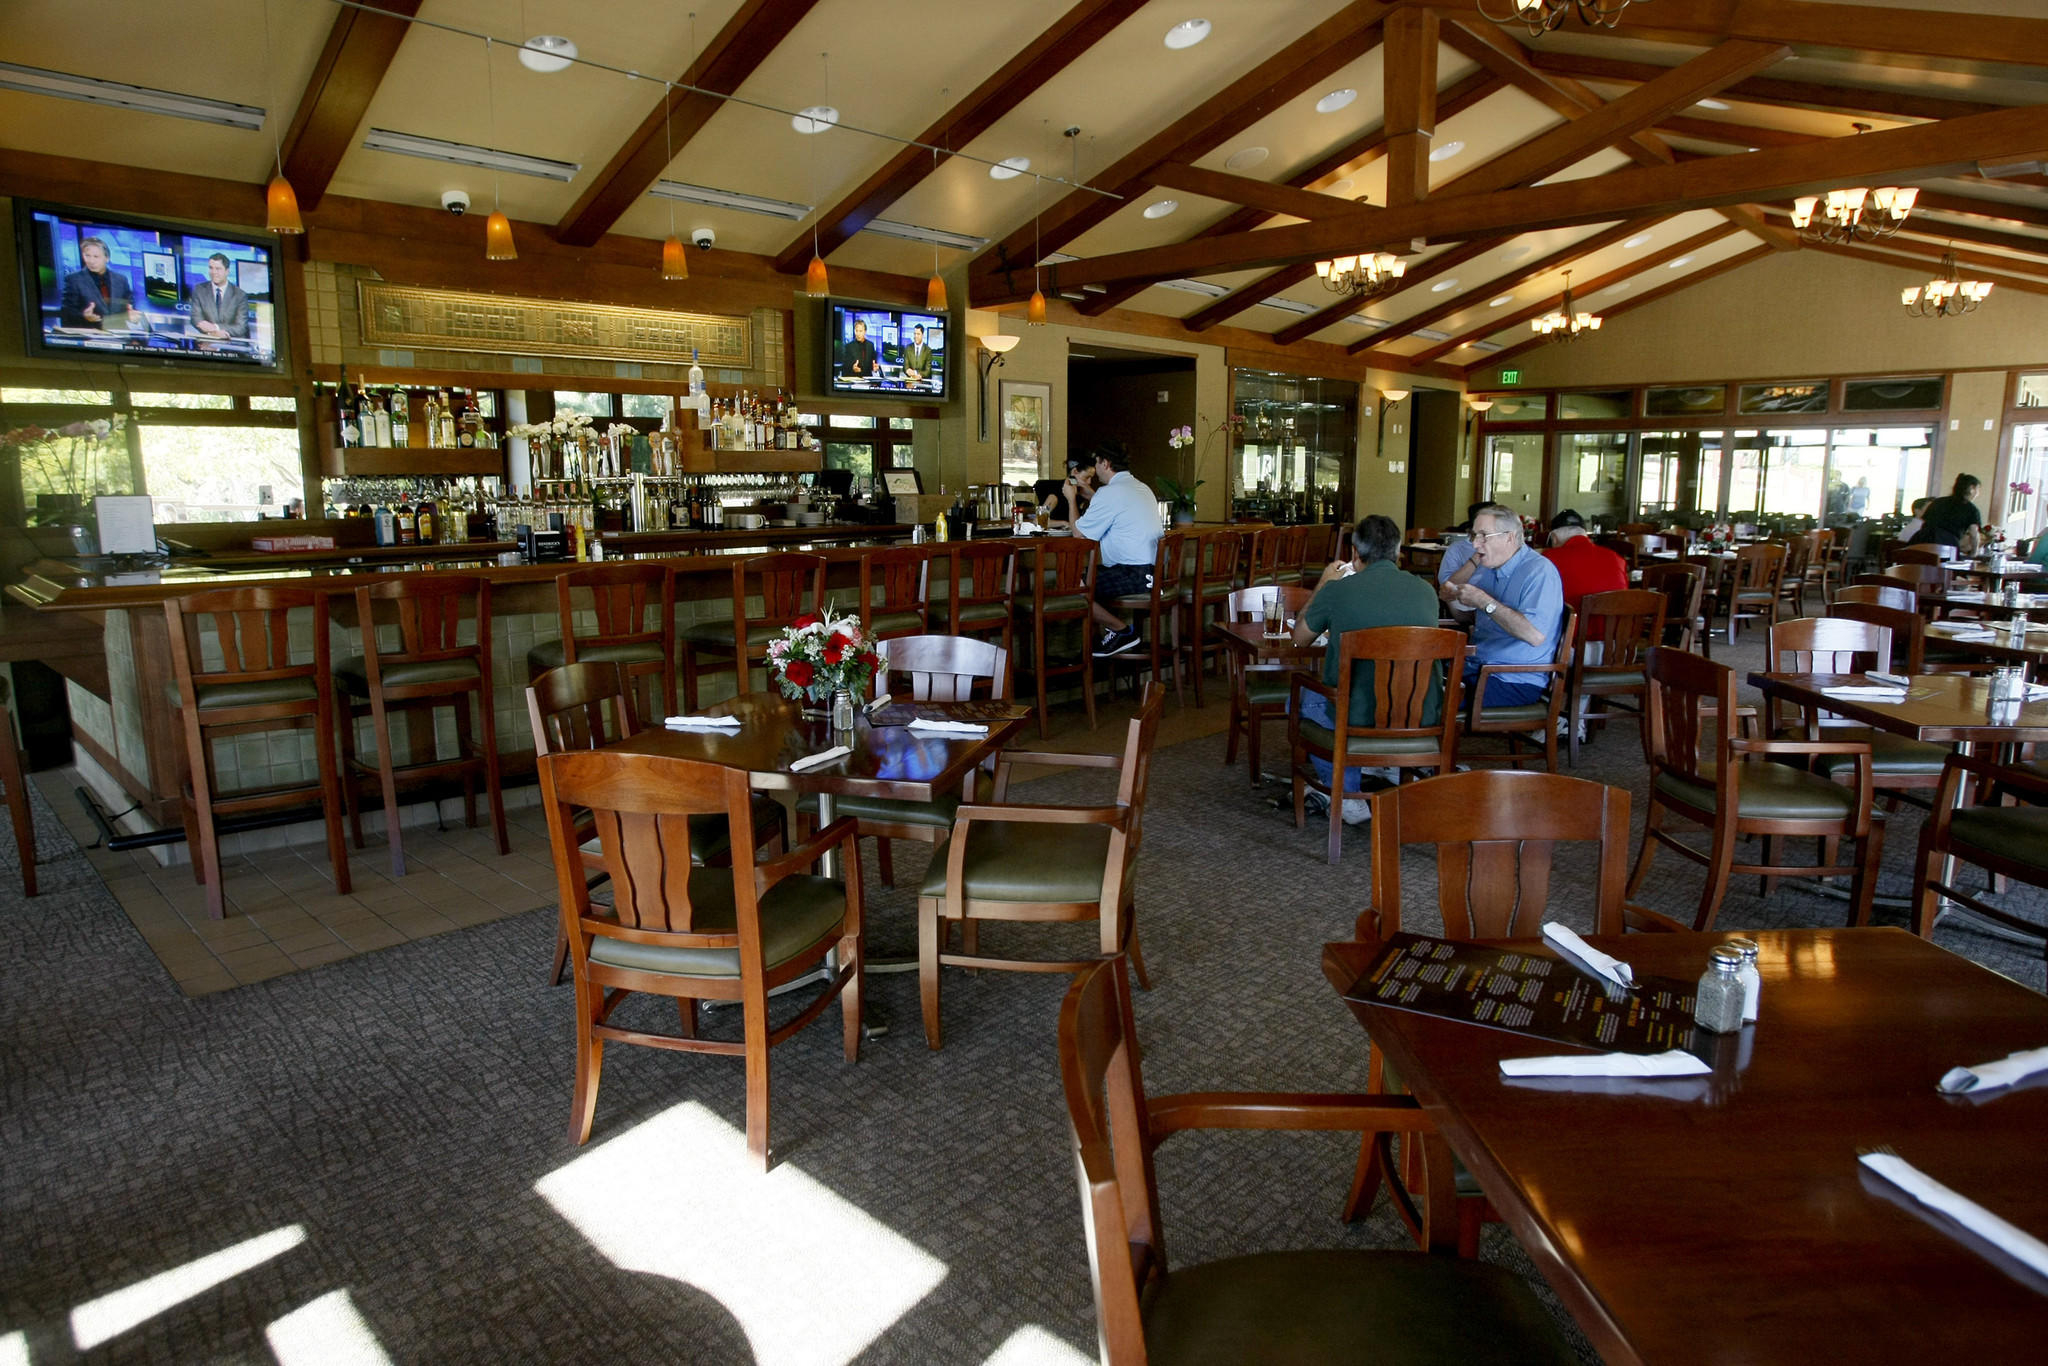 A grand opening will be held next week for the new restaurant Canyon Grille at DeBell at DeBell Golf Club in Burbank, pictured on Friday, January 17, 2014.